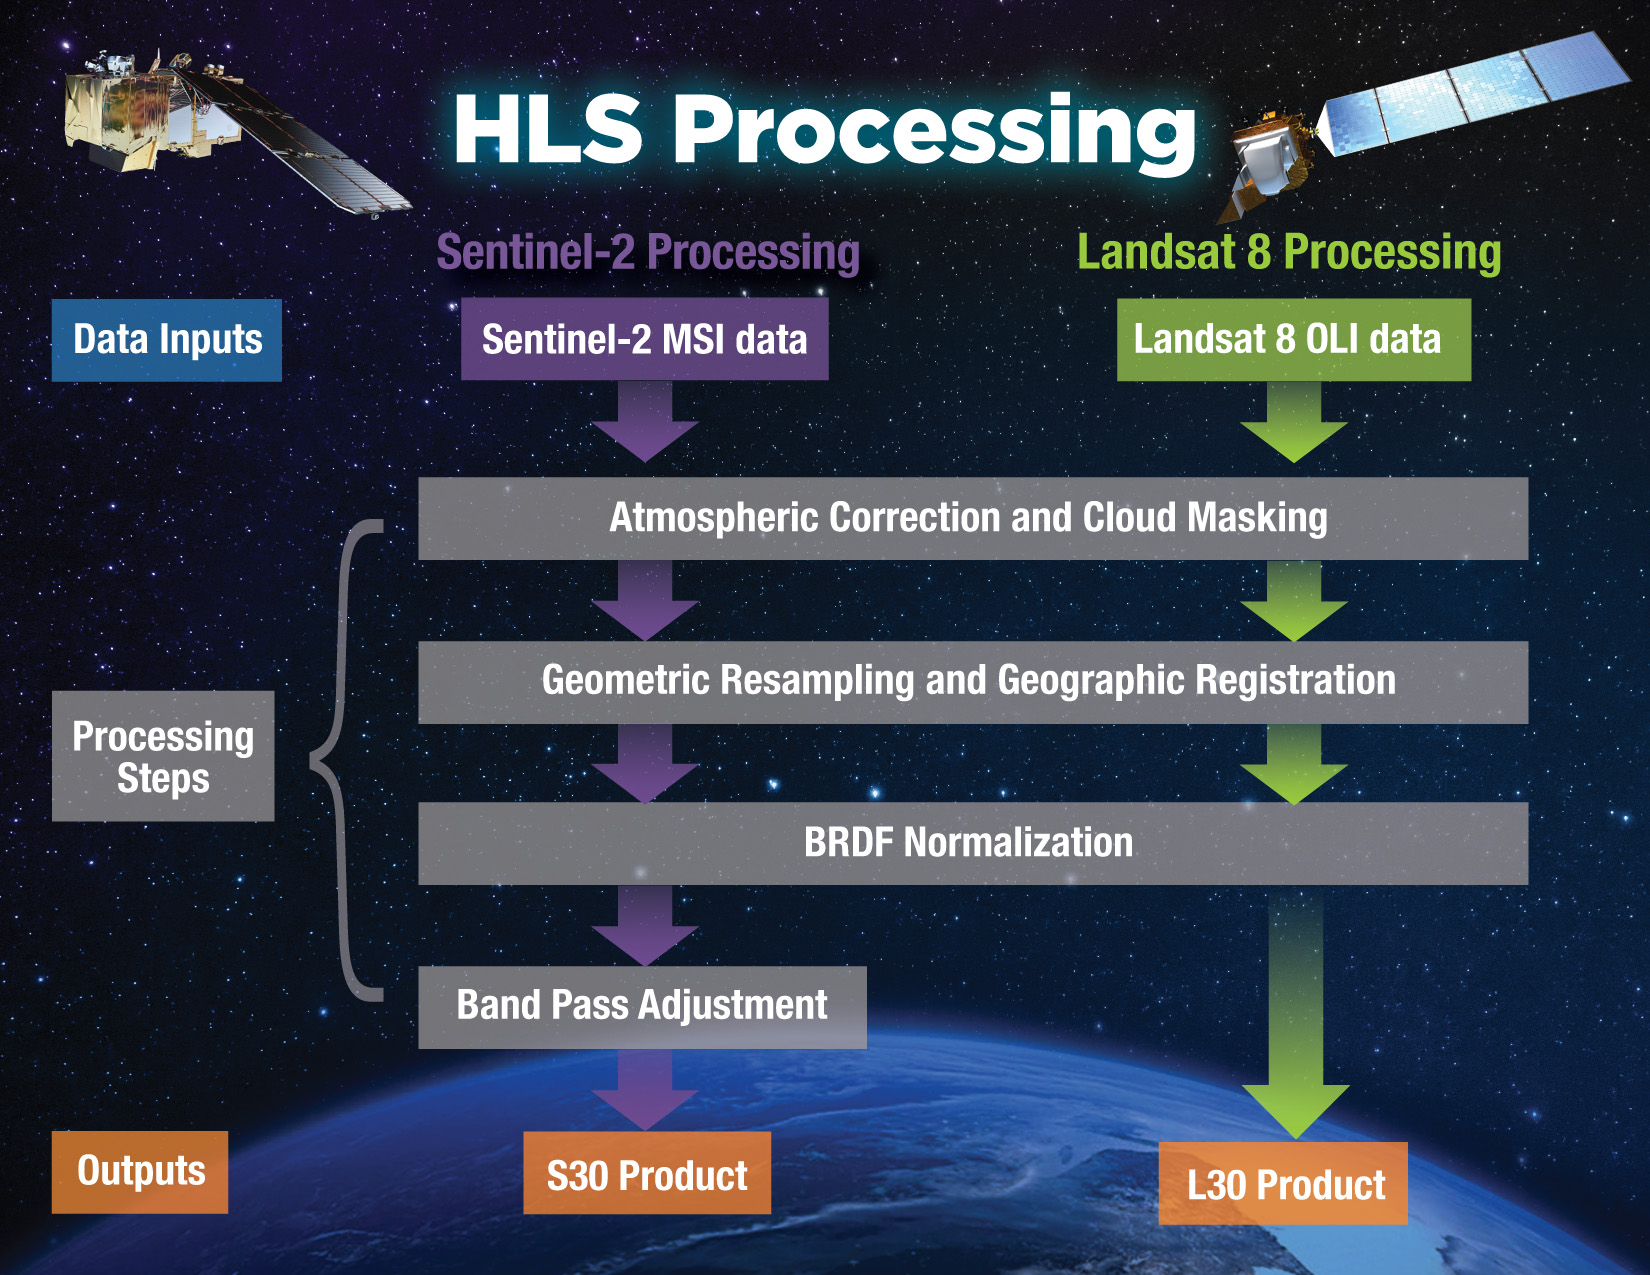 This infographic describes the process used to create HLS data